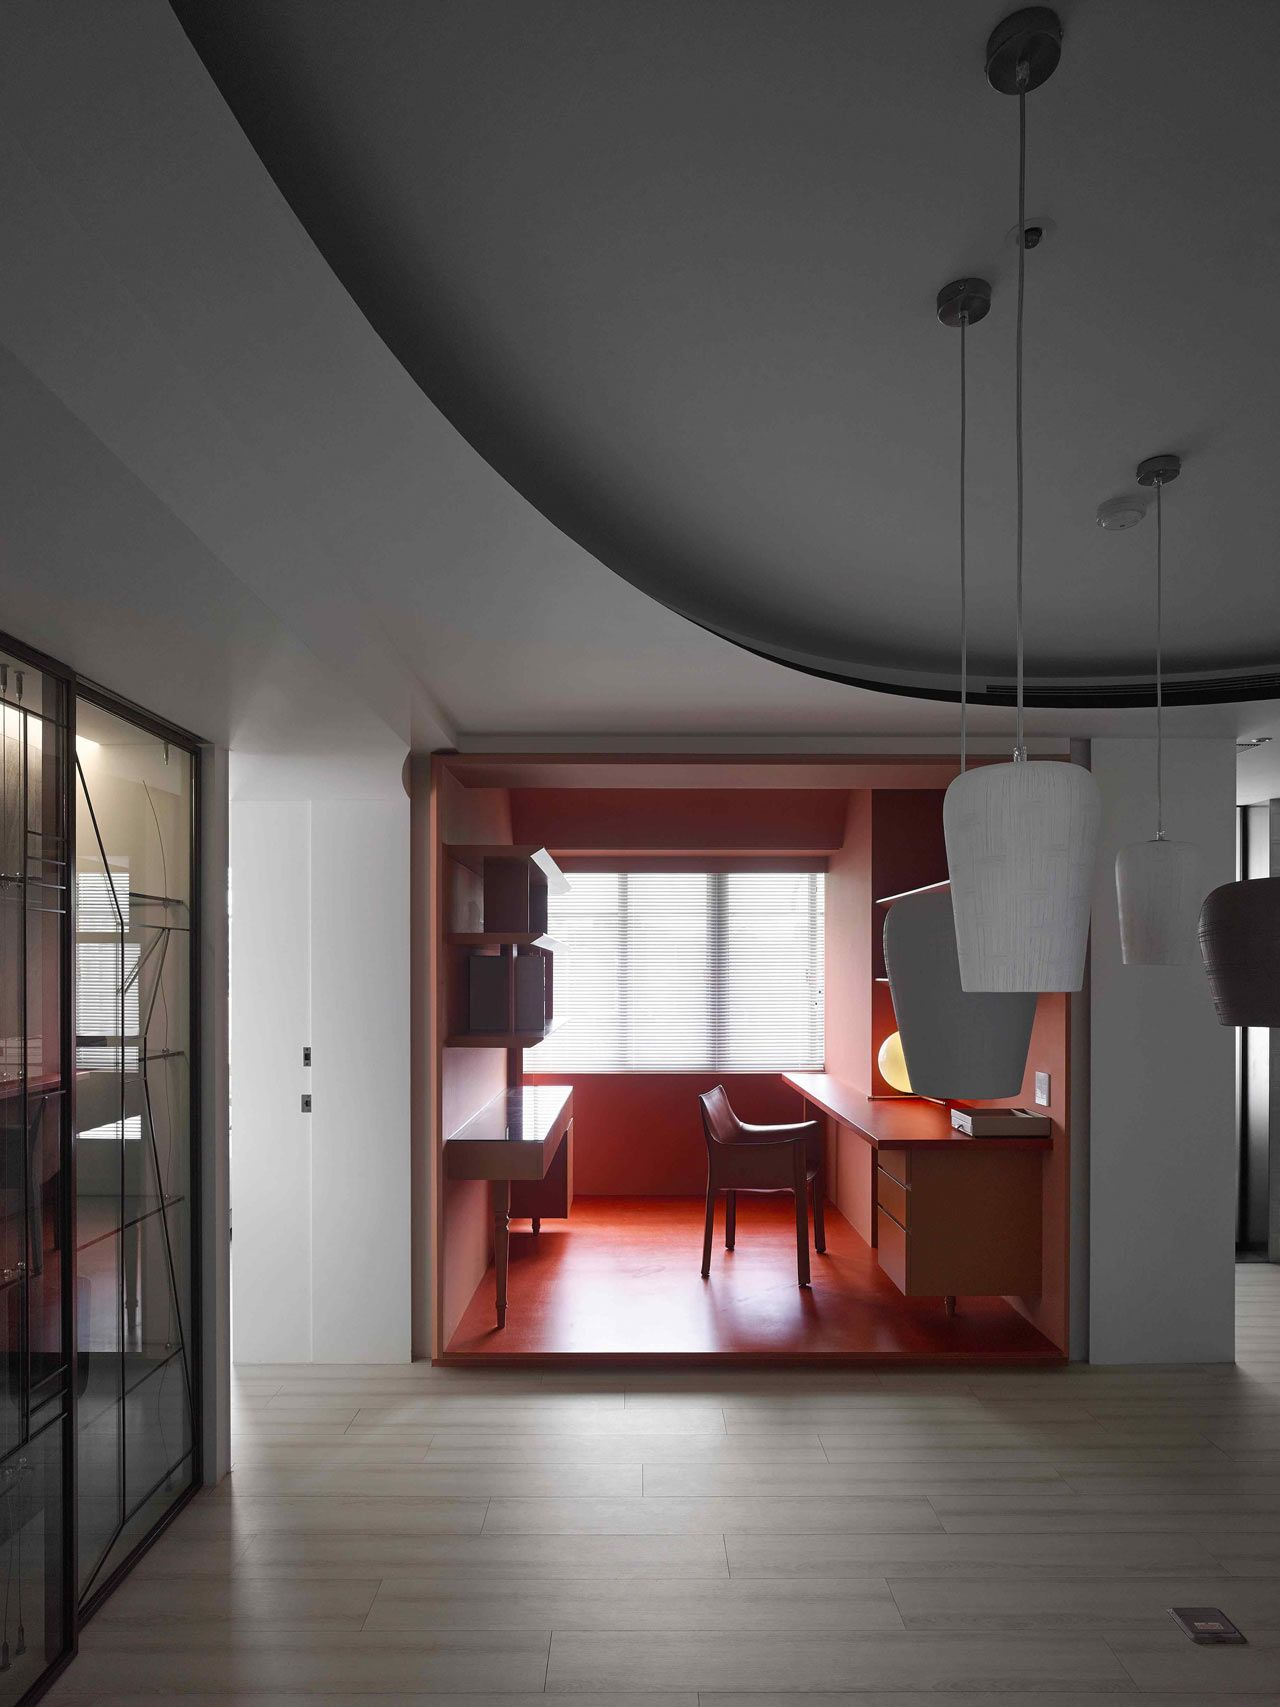 For the young homeowner a french educated fashion designer waterfrom design created a colorful sophisticated apartment inspired by paper sewing patterns